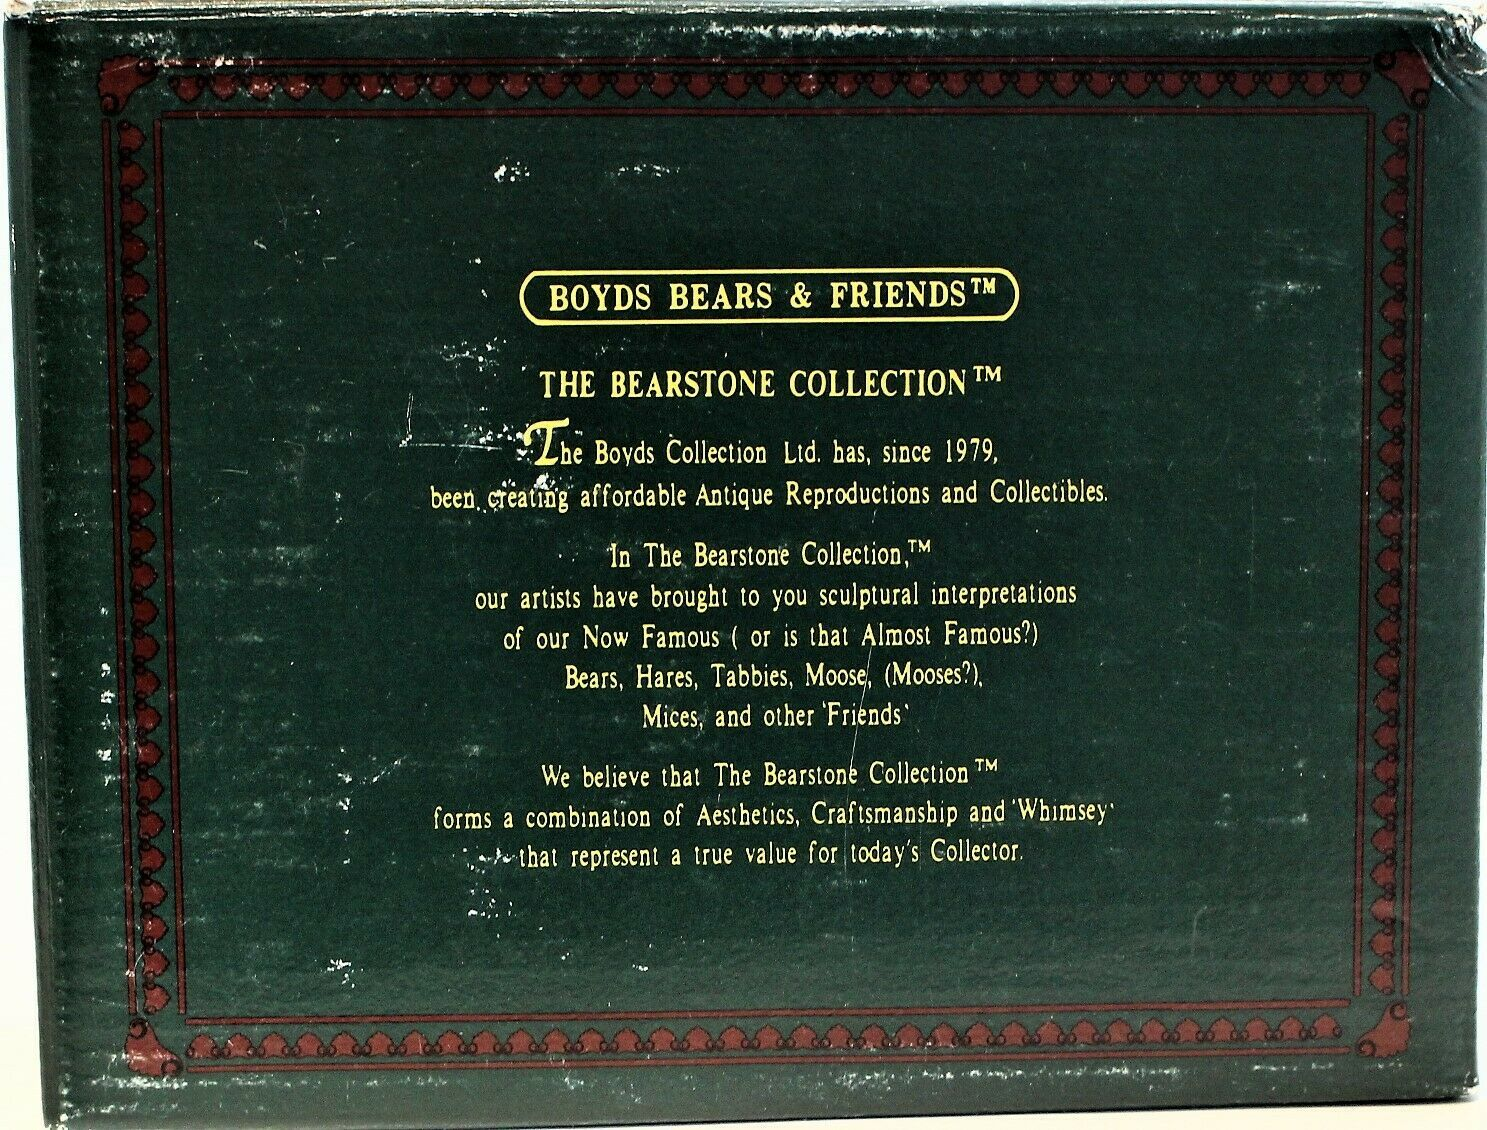 Boyd's Bearstone Collection Above The Clouds Ornament Stand Resin Star 1997 image 10